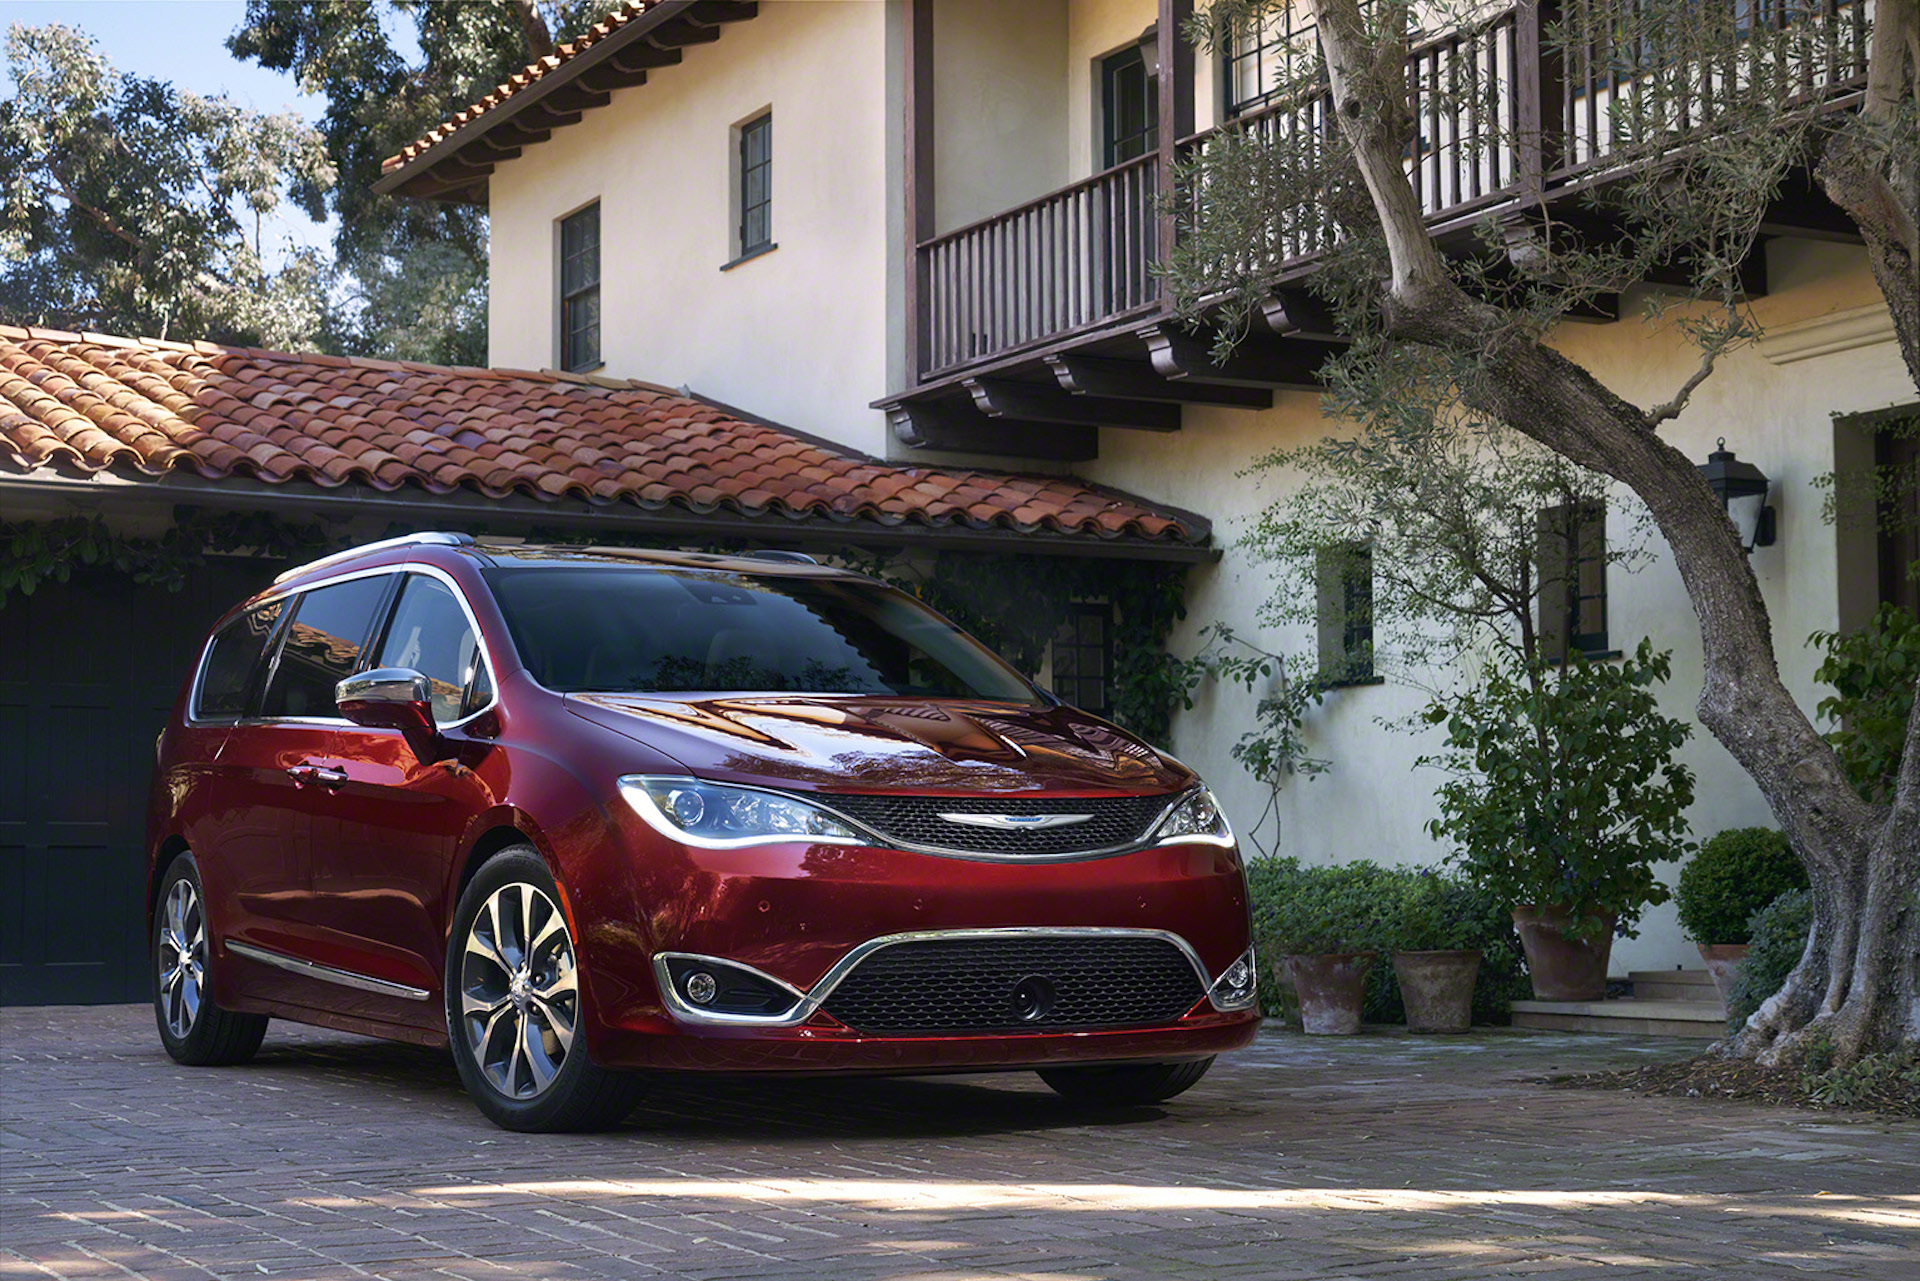 2017 Chrysler Pacifica Town Country Replacement Revealed With Hybrid